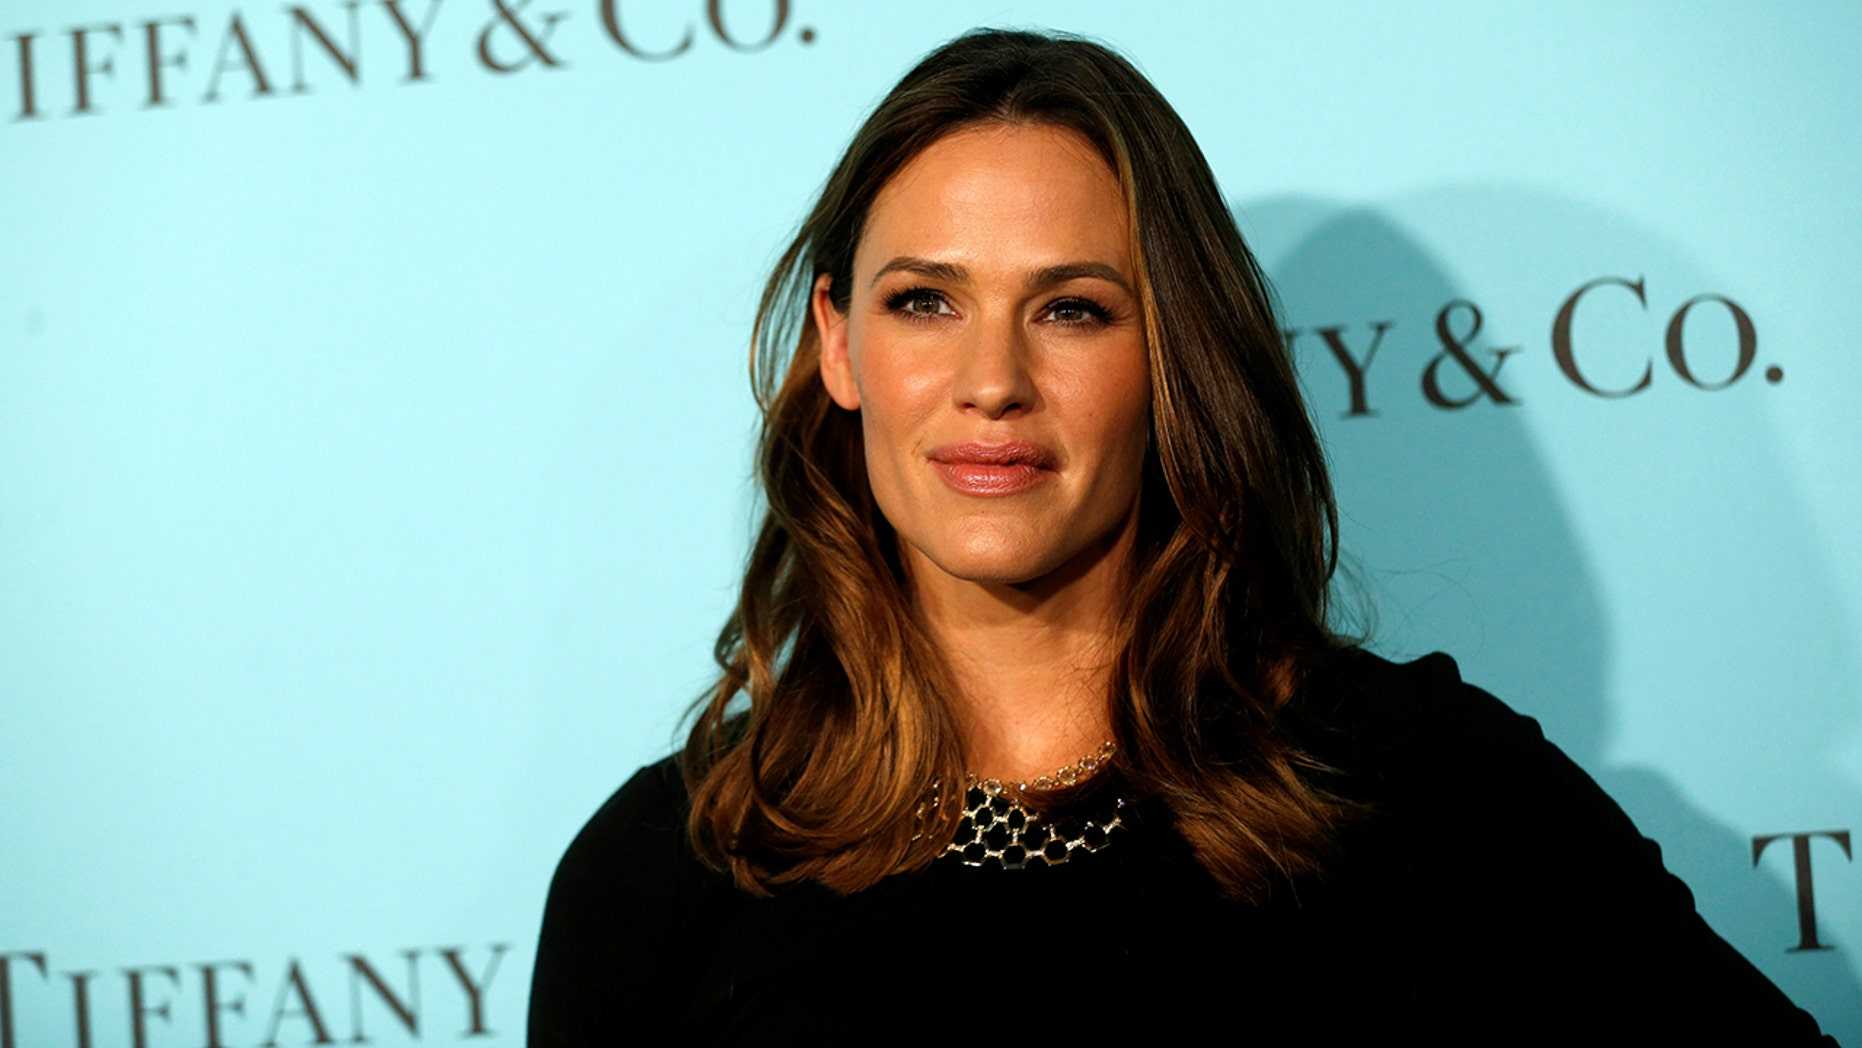 Actor Jennifer Garner poses at a reception for the re-opening of the Tiffany & Co. store in Beverly Hills, California U.S., October 13, 2016.   REUTERS/Mario Anzuoni - S1BEUGWIOFAA